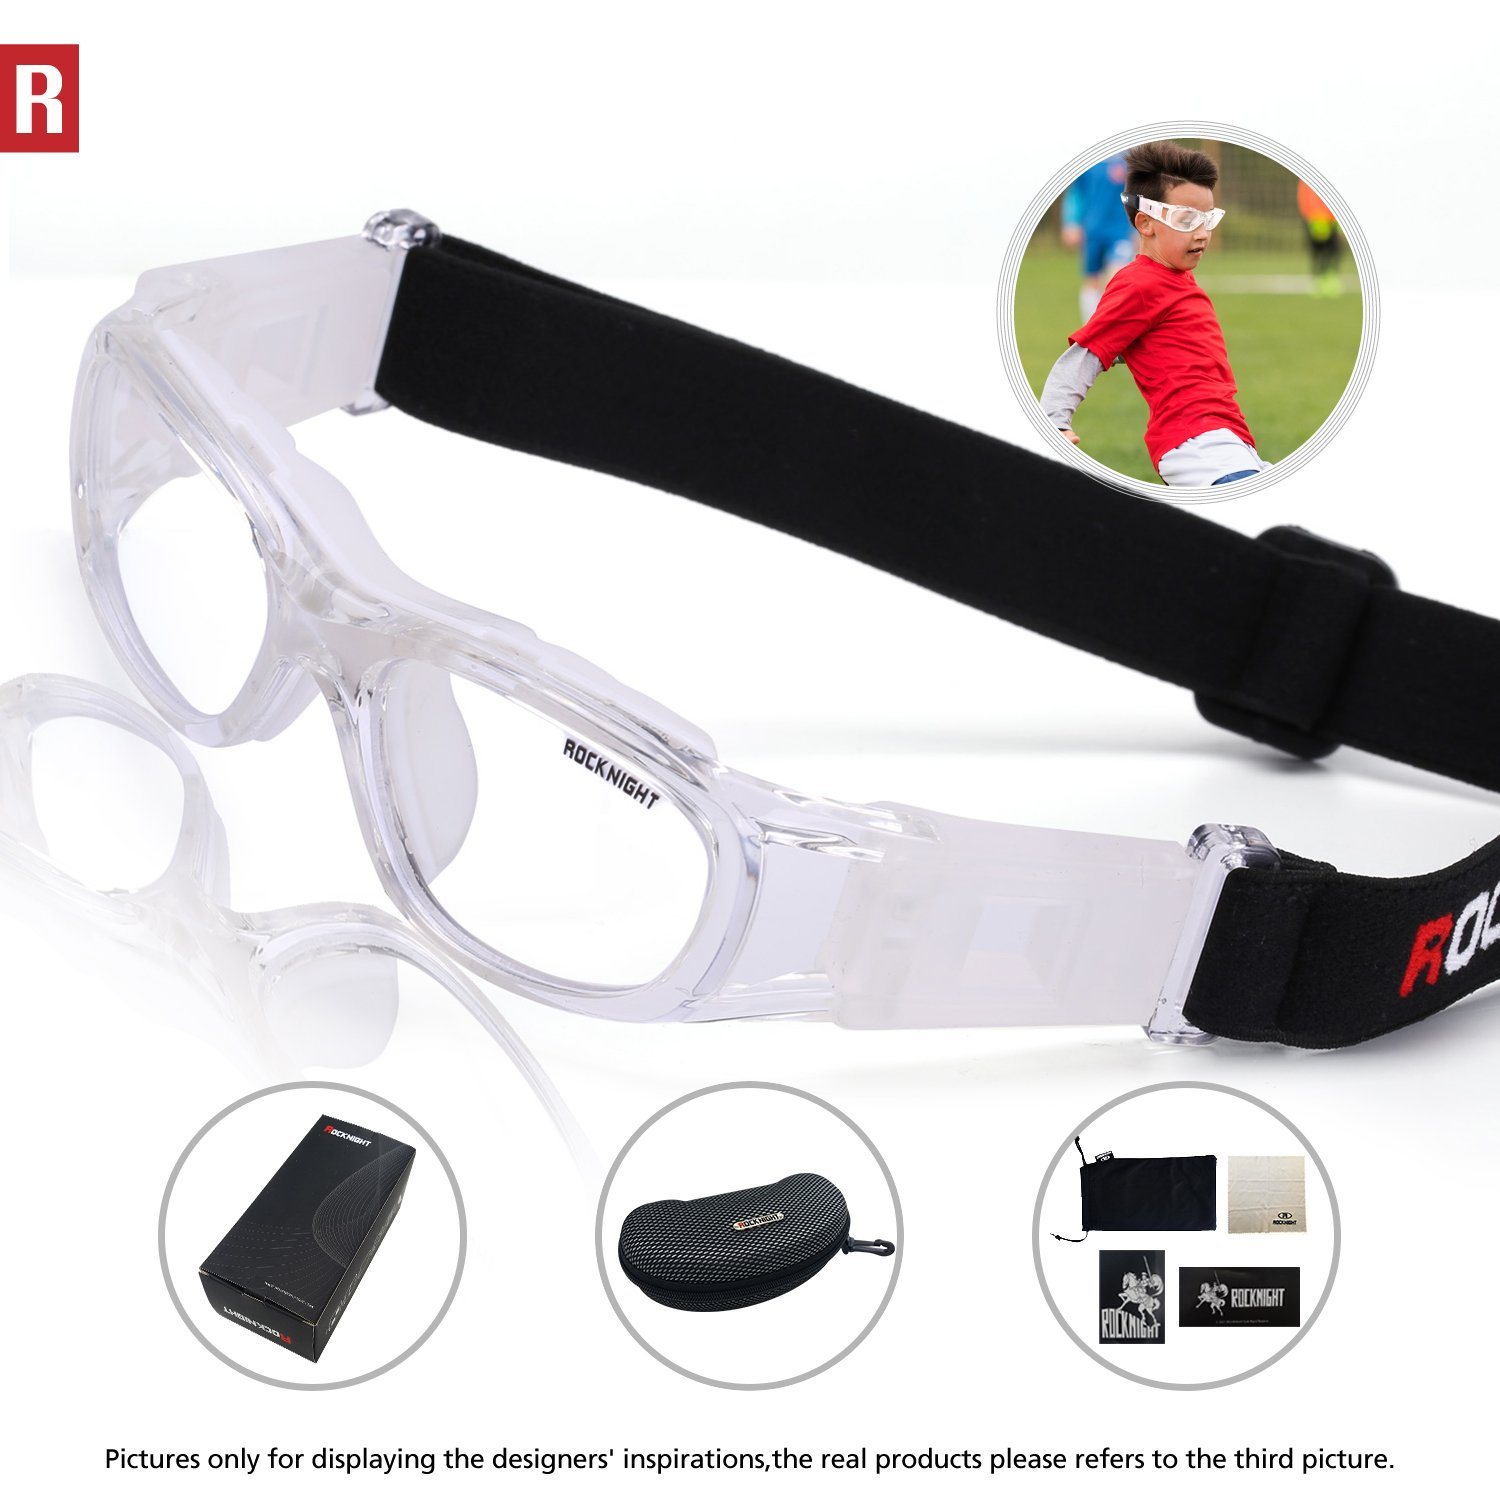 2fffff695d3 ROCKNIGHT Kids Safety Glasses Basketball Goggles Sports Prescription Glasses  for Volleyball Football Soccer 0855 Transparent